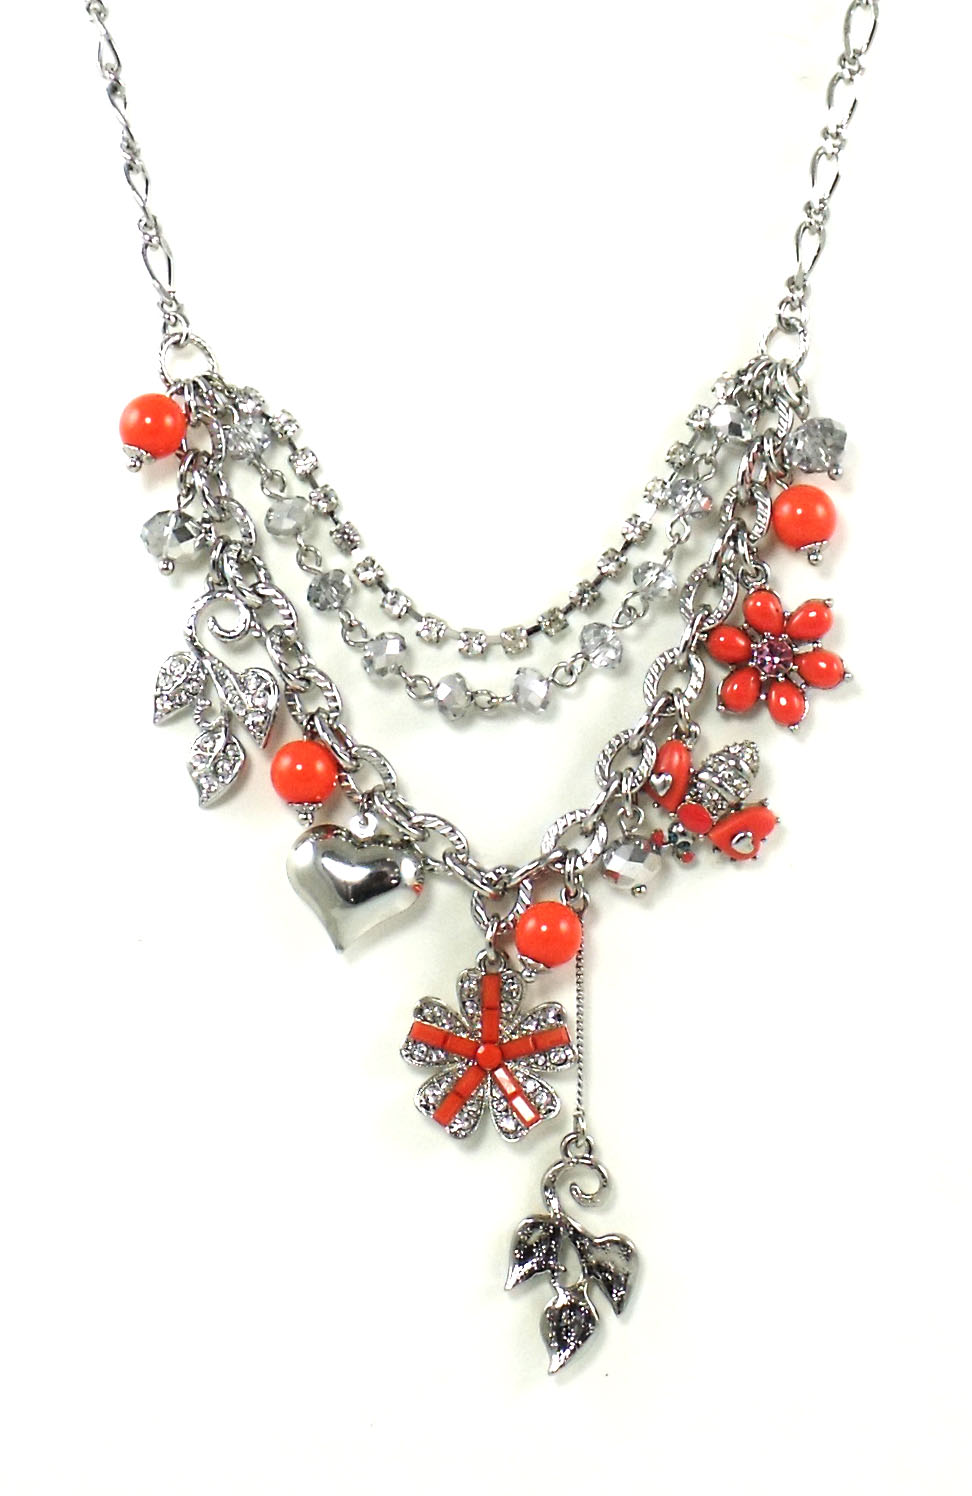 Betsey Johnson Jewelry Iconic Coral Flower Frontal Necklace New